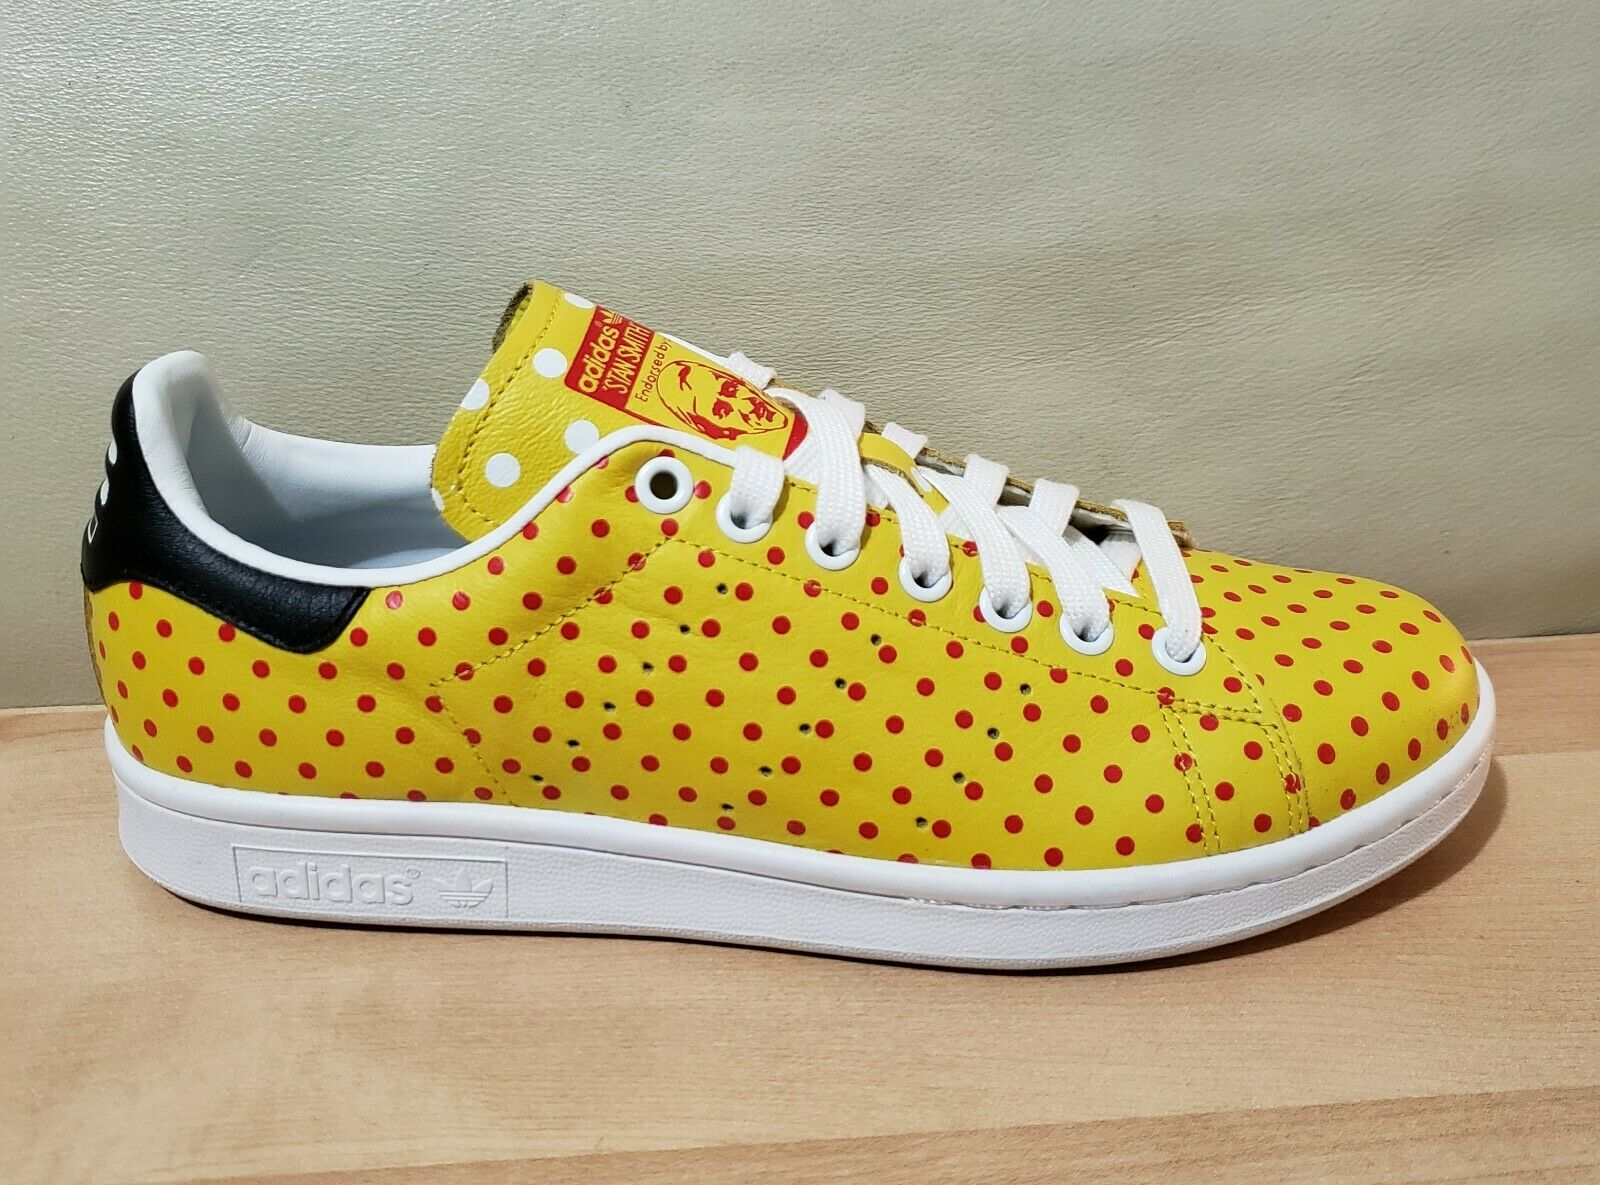 Mens ADIDAS X Pharrell WILLIAMS Stan Smith SPD Polka Dot PW B25402 Athletic shoes